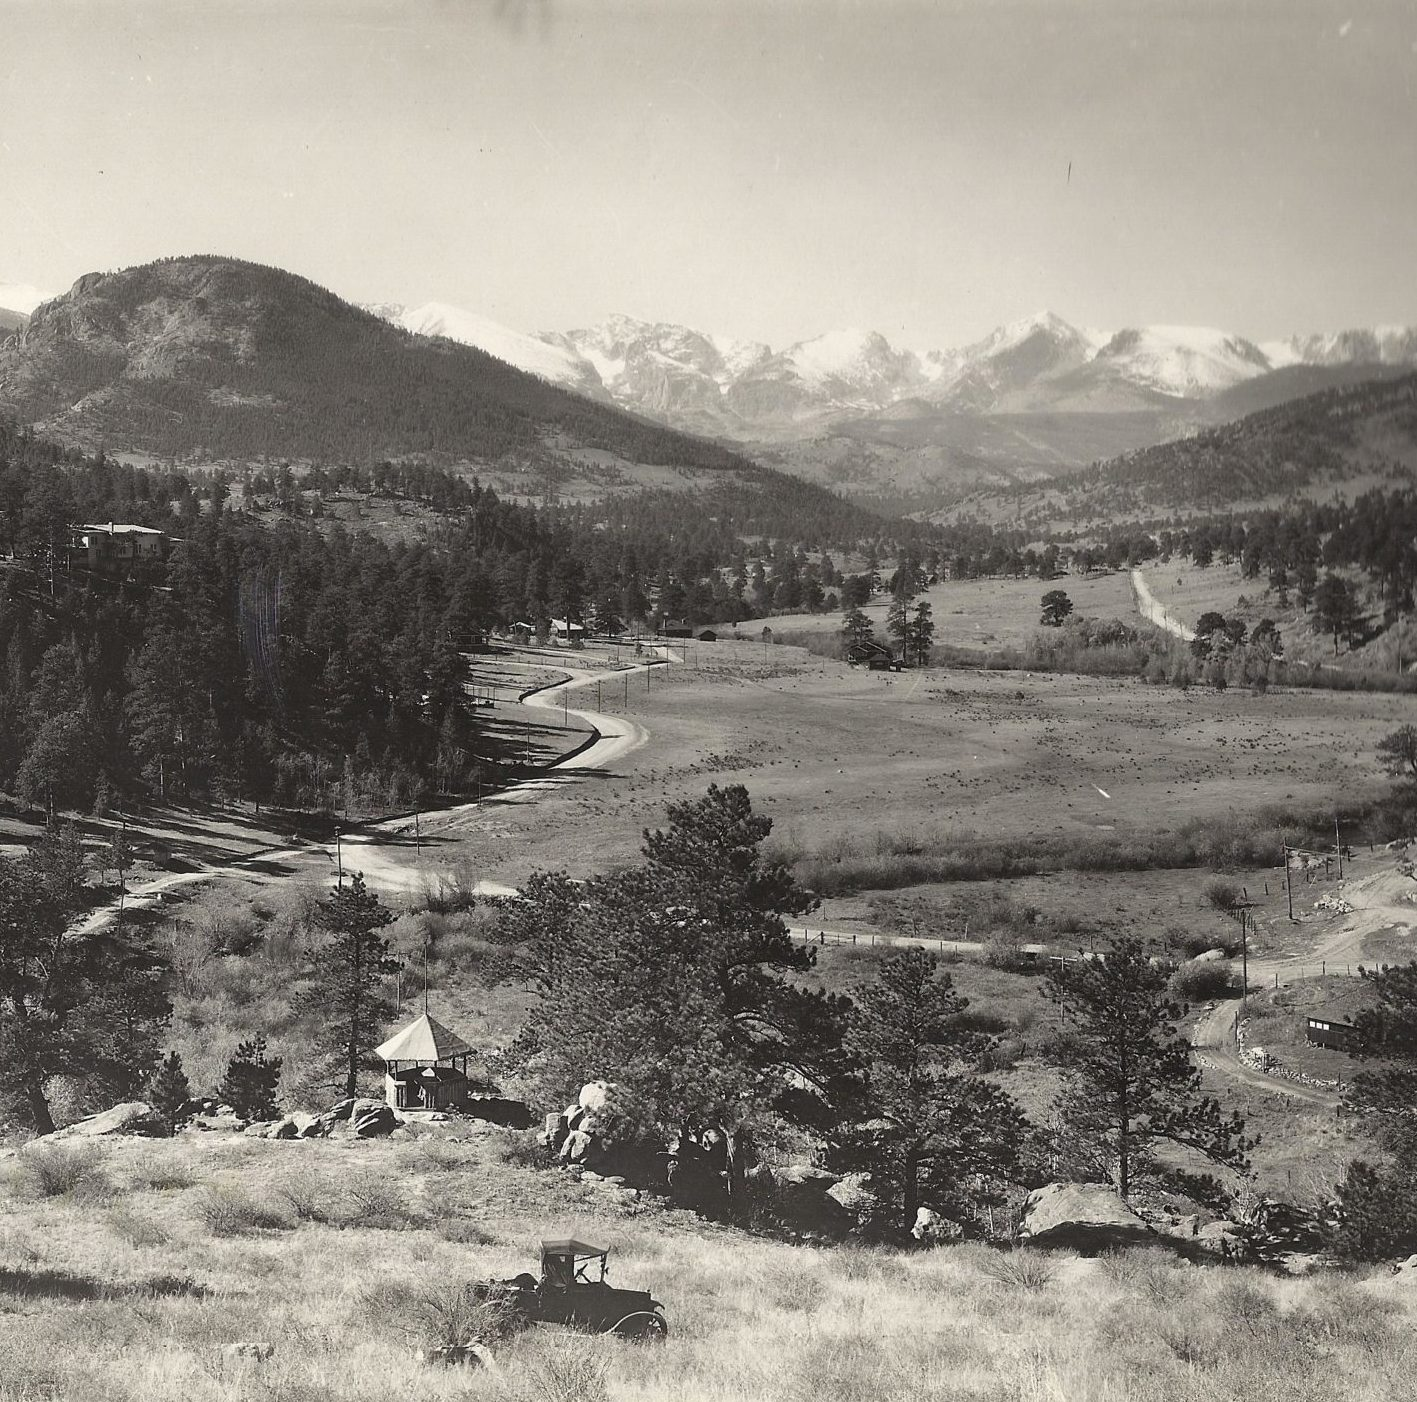 Image of Redemption Cabin area around 1914.